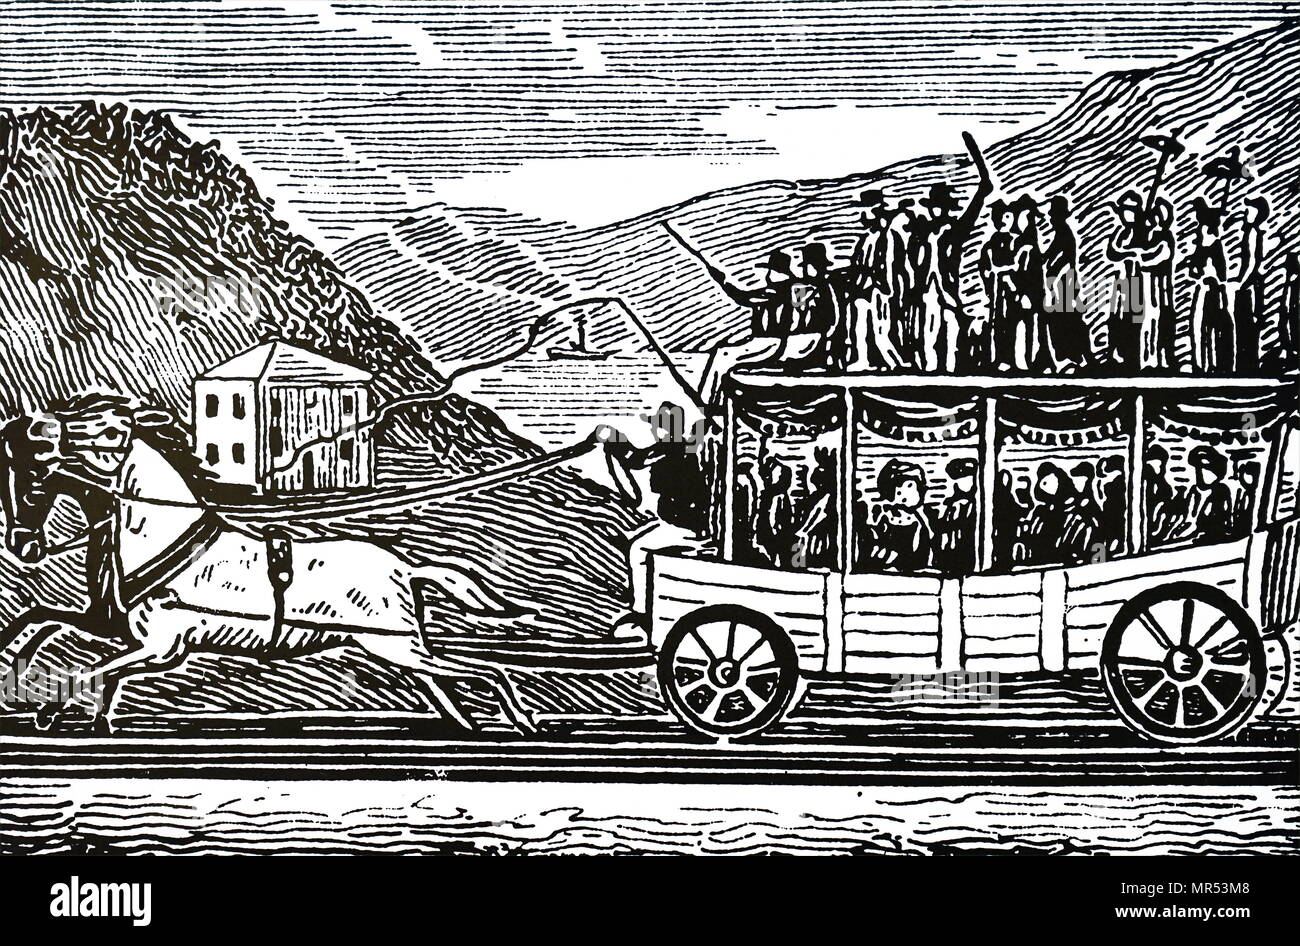 Engraving depicting a horse-drawn carriage on the Baltimore and Ohio Railroad. Dated 19th century - Stock Image